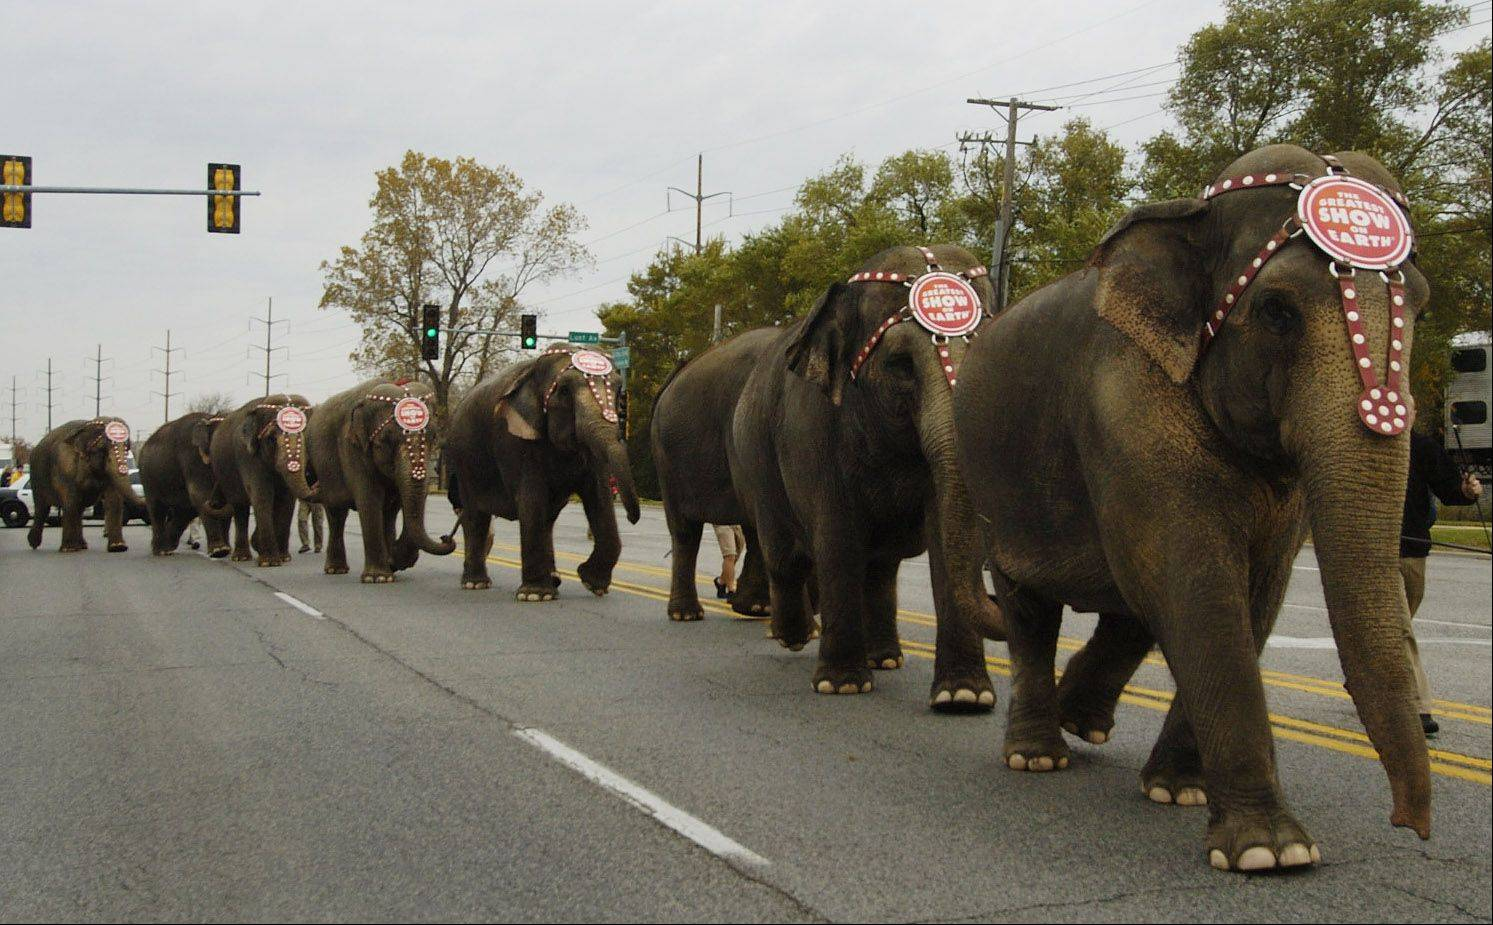 Bob Chwedyk/bchwedyk@dailyherald.com Ringling Bros. elephants walk down Mannheim Road from Allstate Arena to Orchard Place Elementary School in Des Plaines.